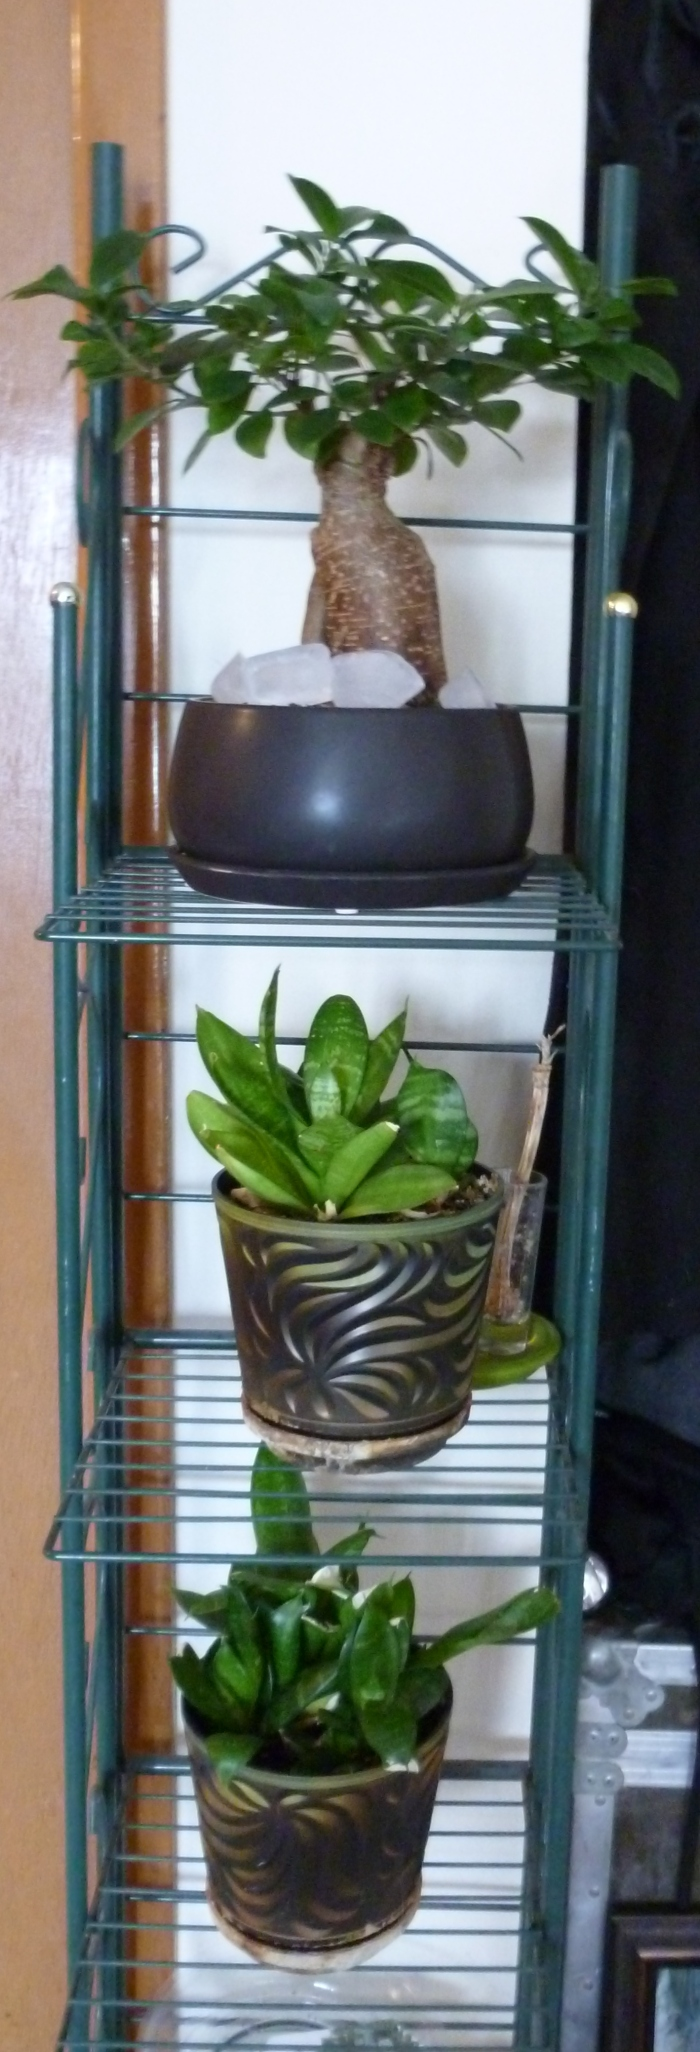 This is my narrow plant rack.  It's perfect for my plants that are sensitive to light.